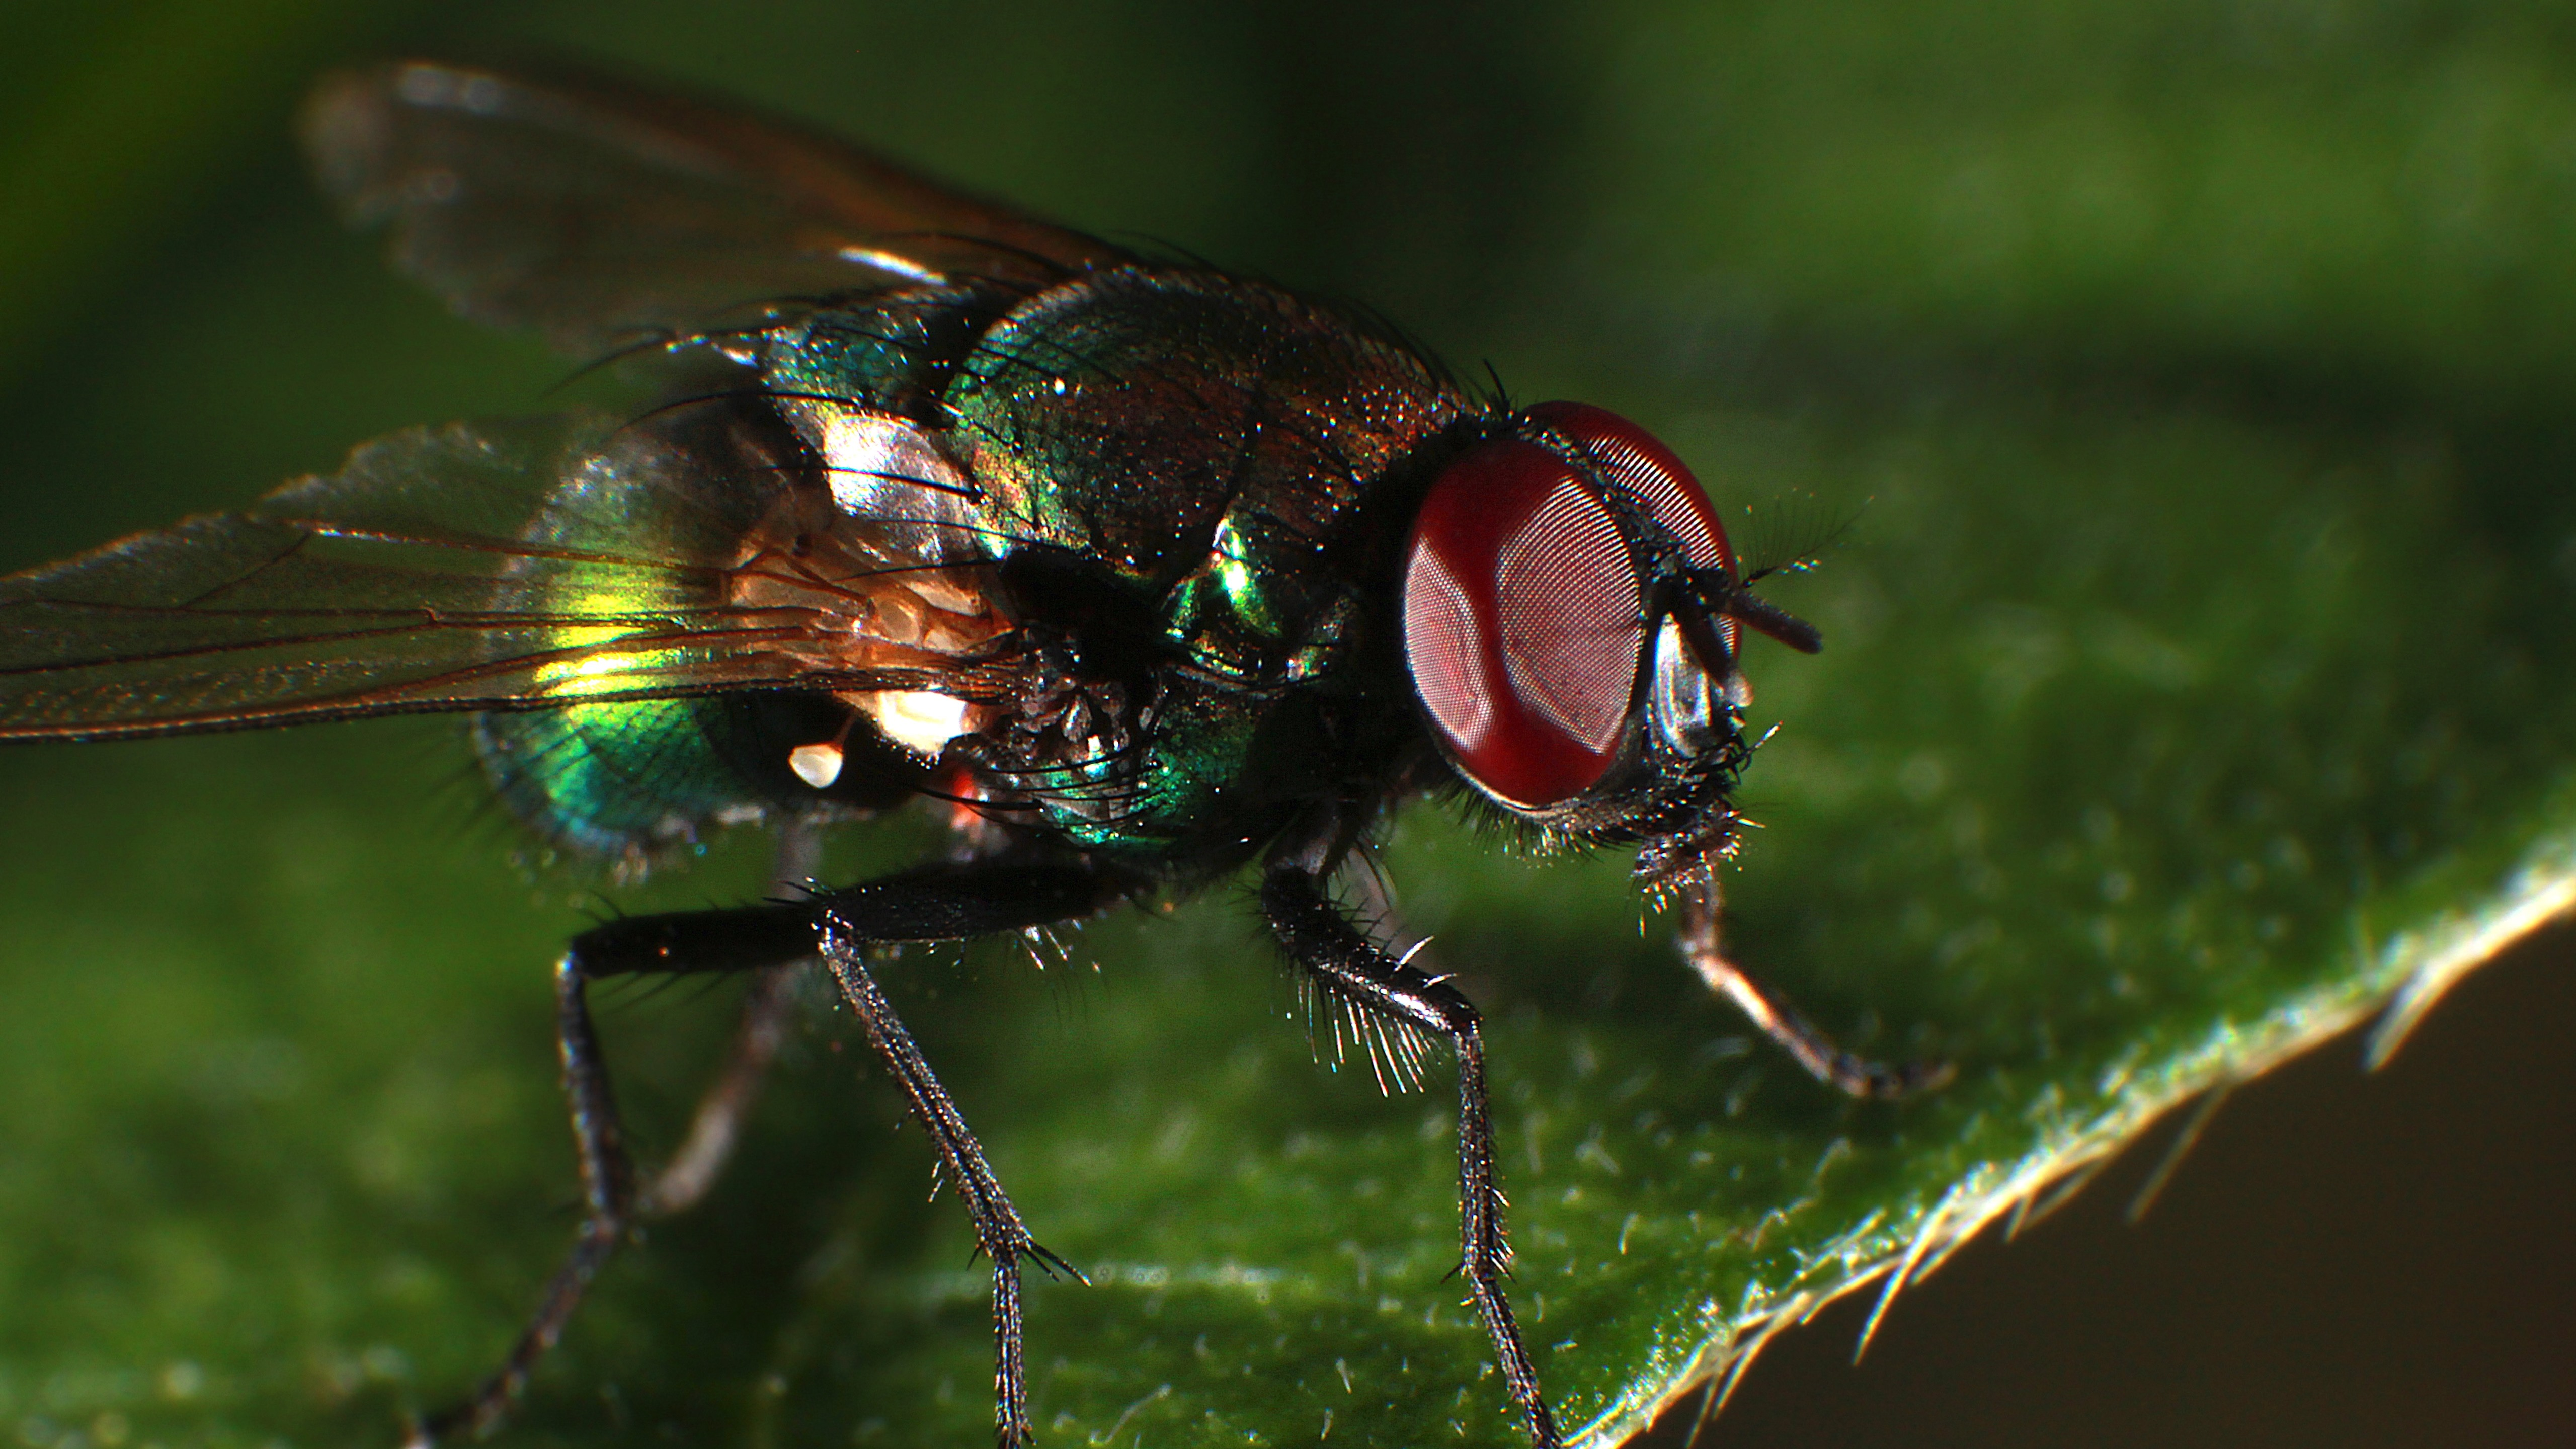 Wallpapers Fly macro photography, insect 5120x2880 UHD 5K